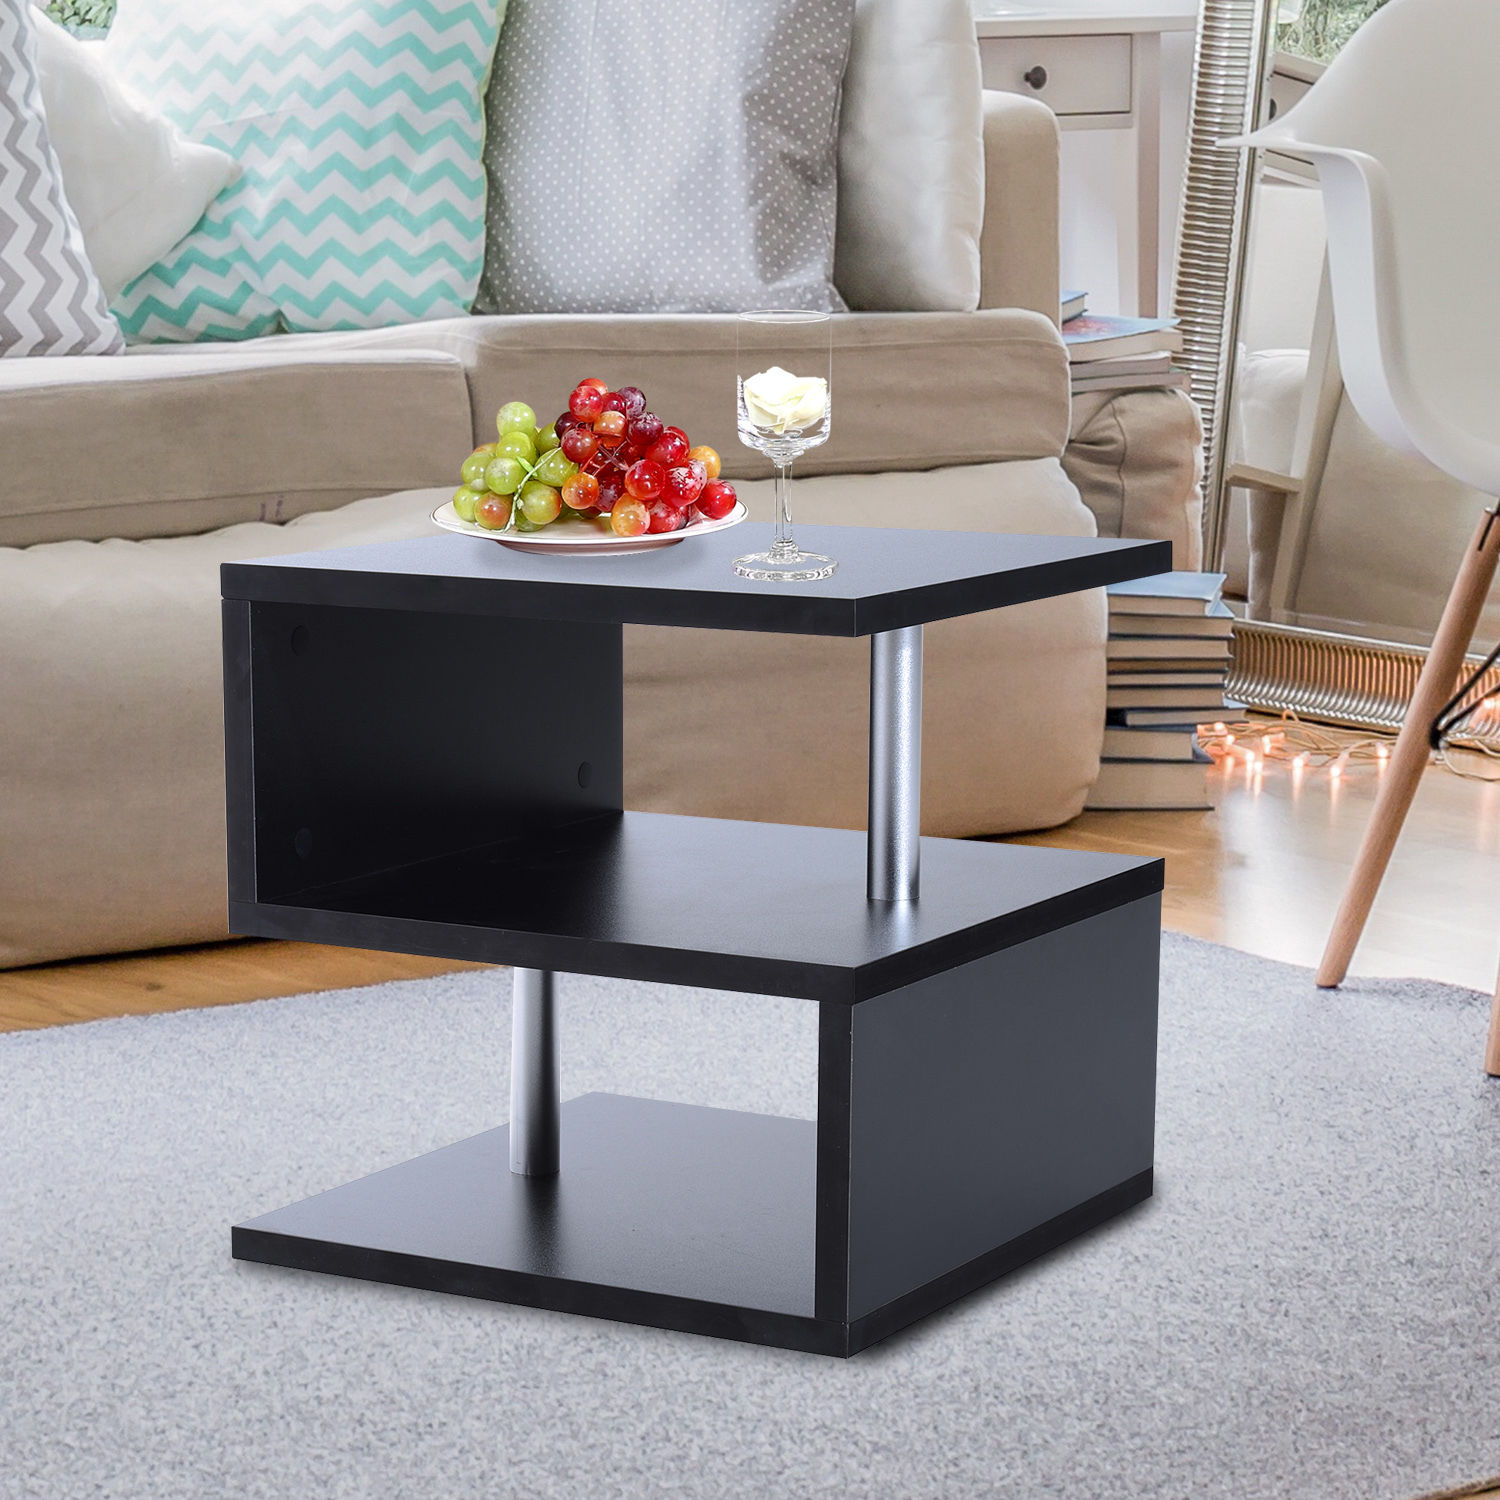 2 Tier Side End Coffee Table Storage Shelves Sofa Couch